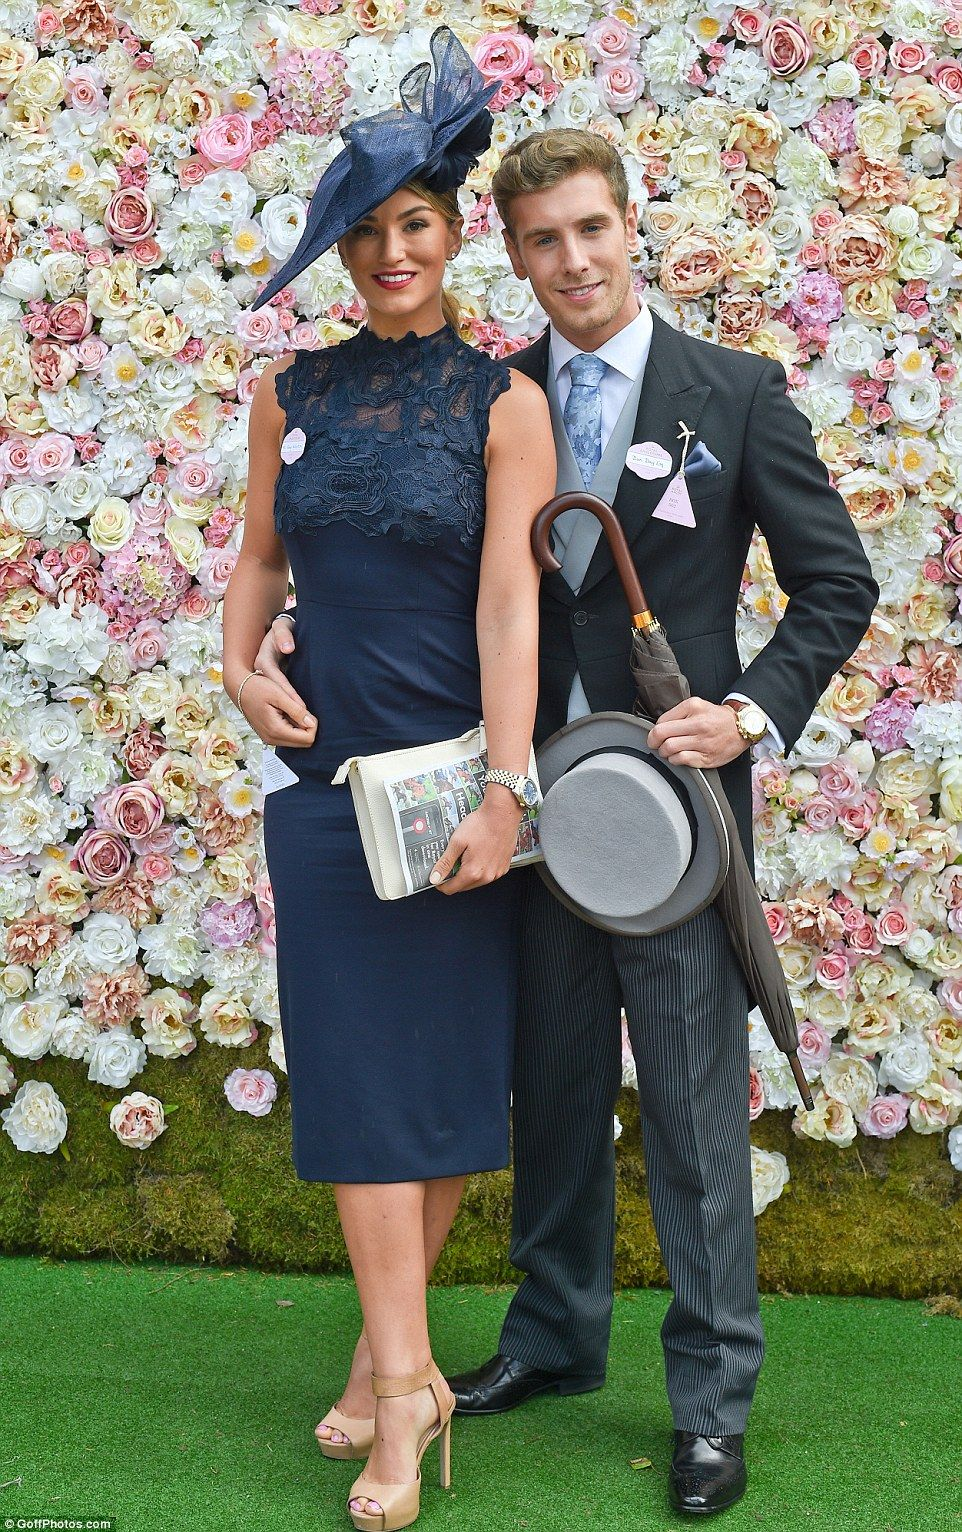 TV presenter and model Amy Willerton  looking elegant in a lace dress and matching hat as she arrived with her boyfriend Daniel Day